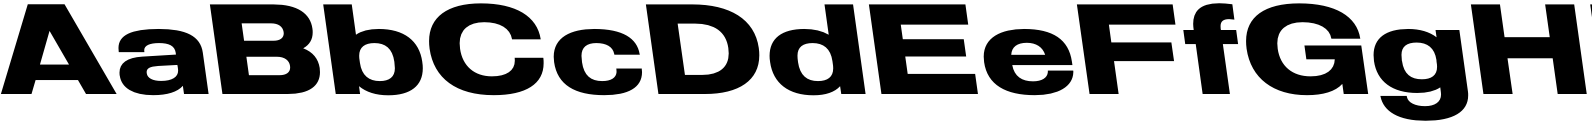 Molde Expanded Bold Reverse Font